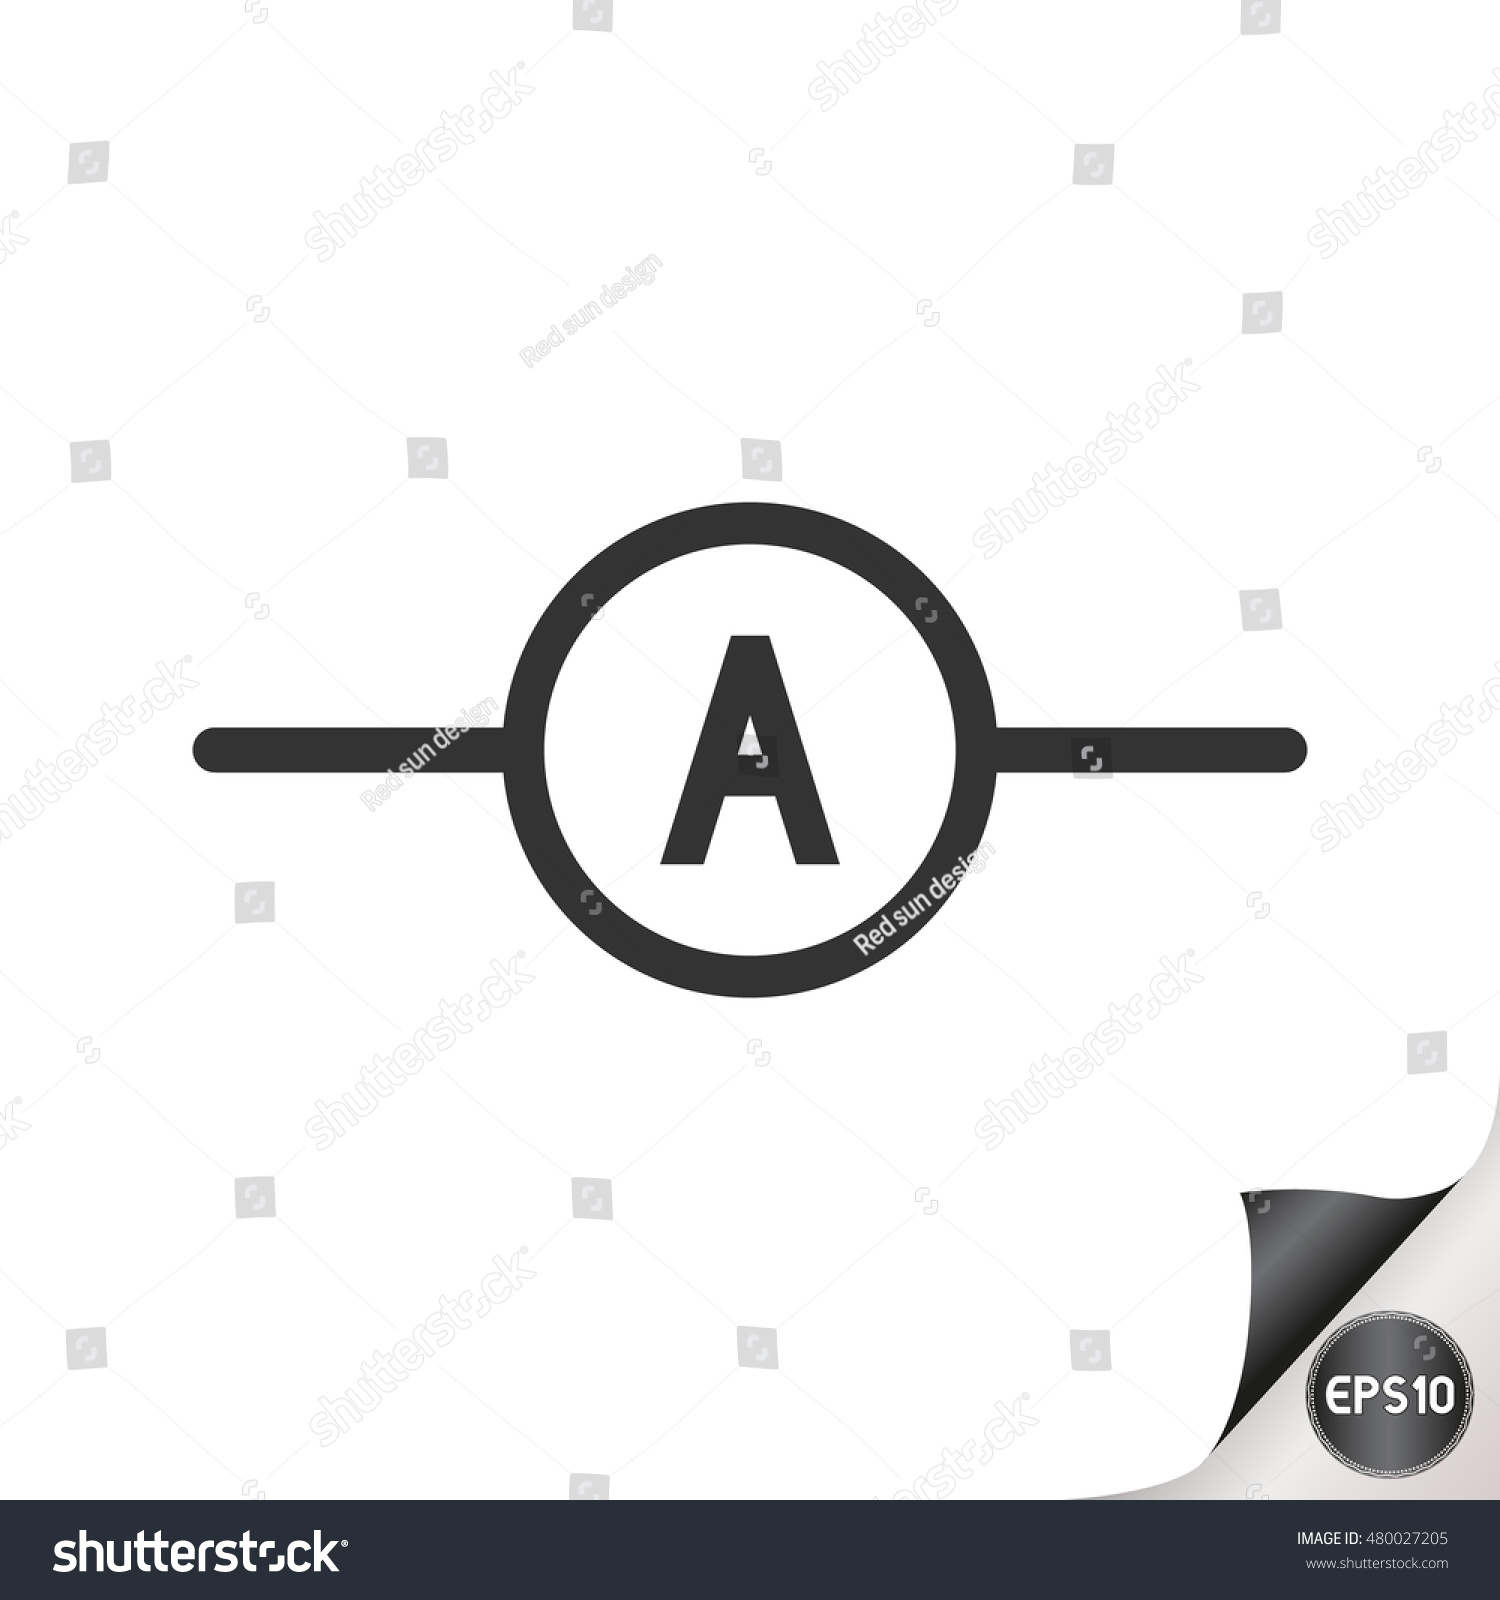 Amp Meter Diagram Schematic Symbols Trusted Schematics Electric Circuit Electronic Stock Vector Royalty Free Basic Electrical Diagrams